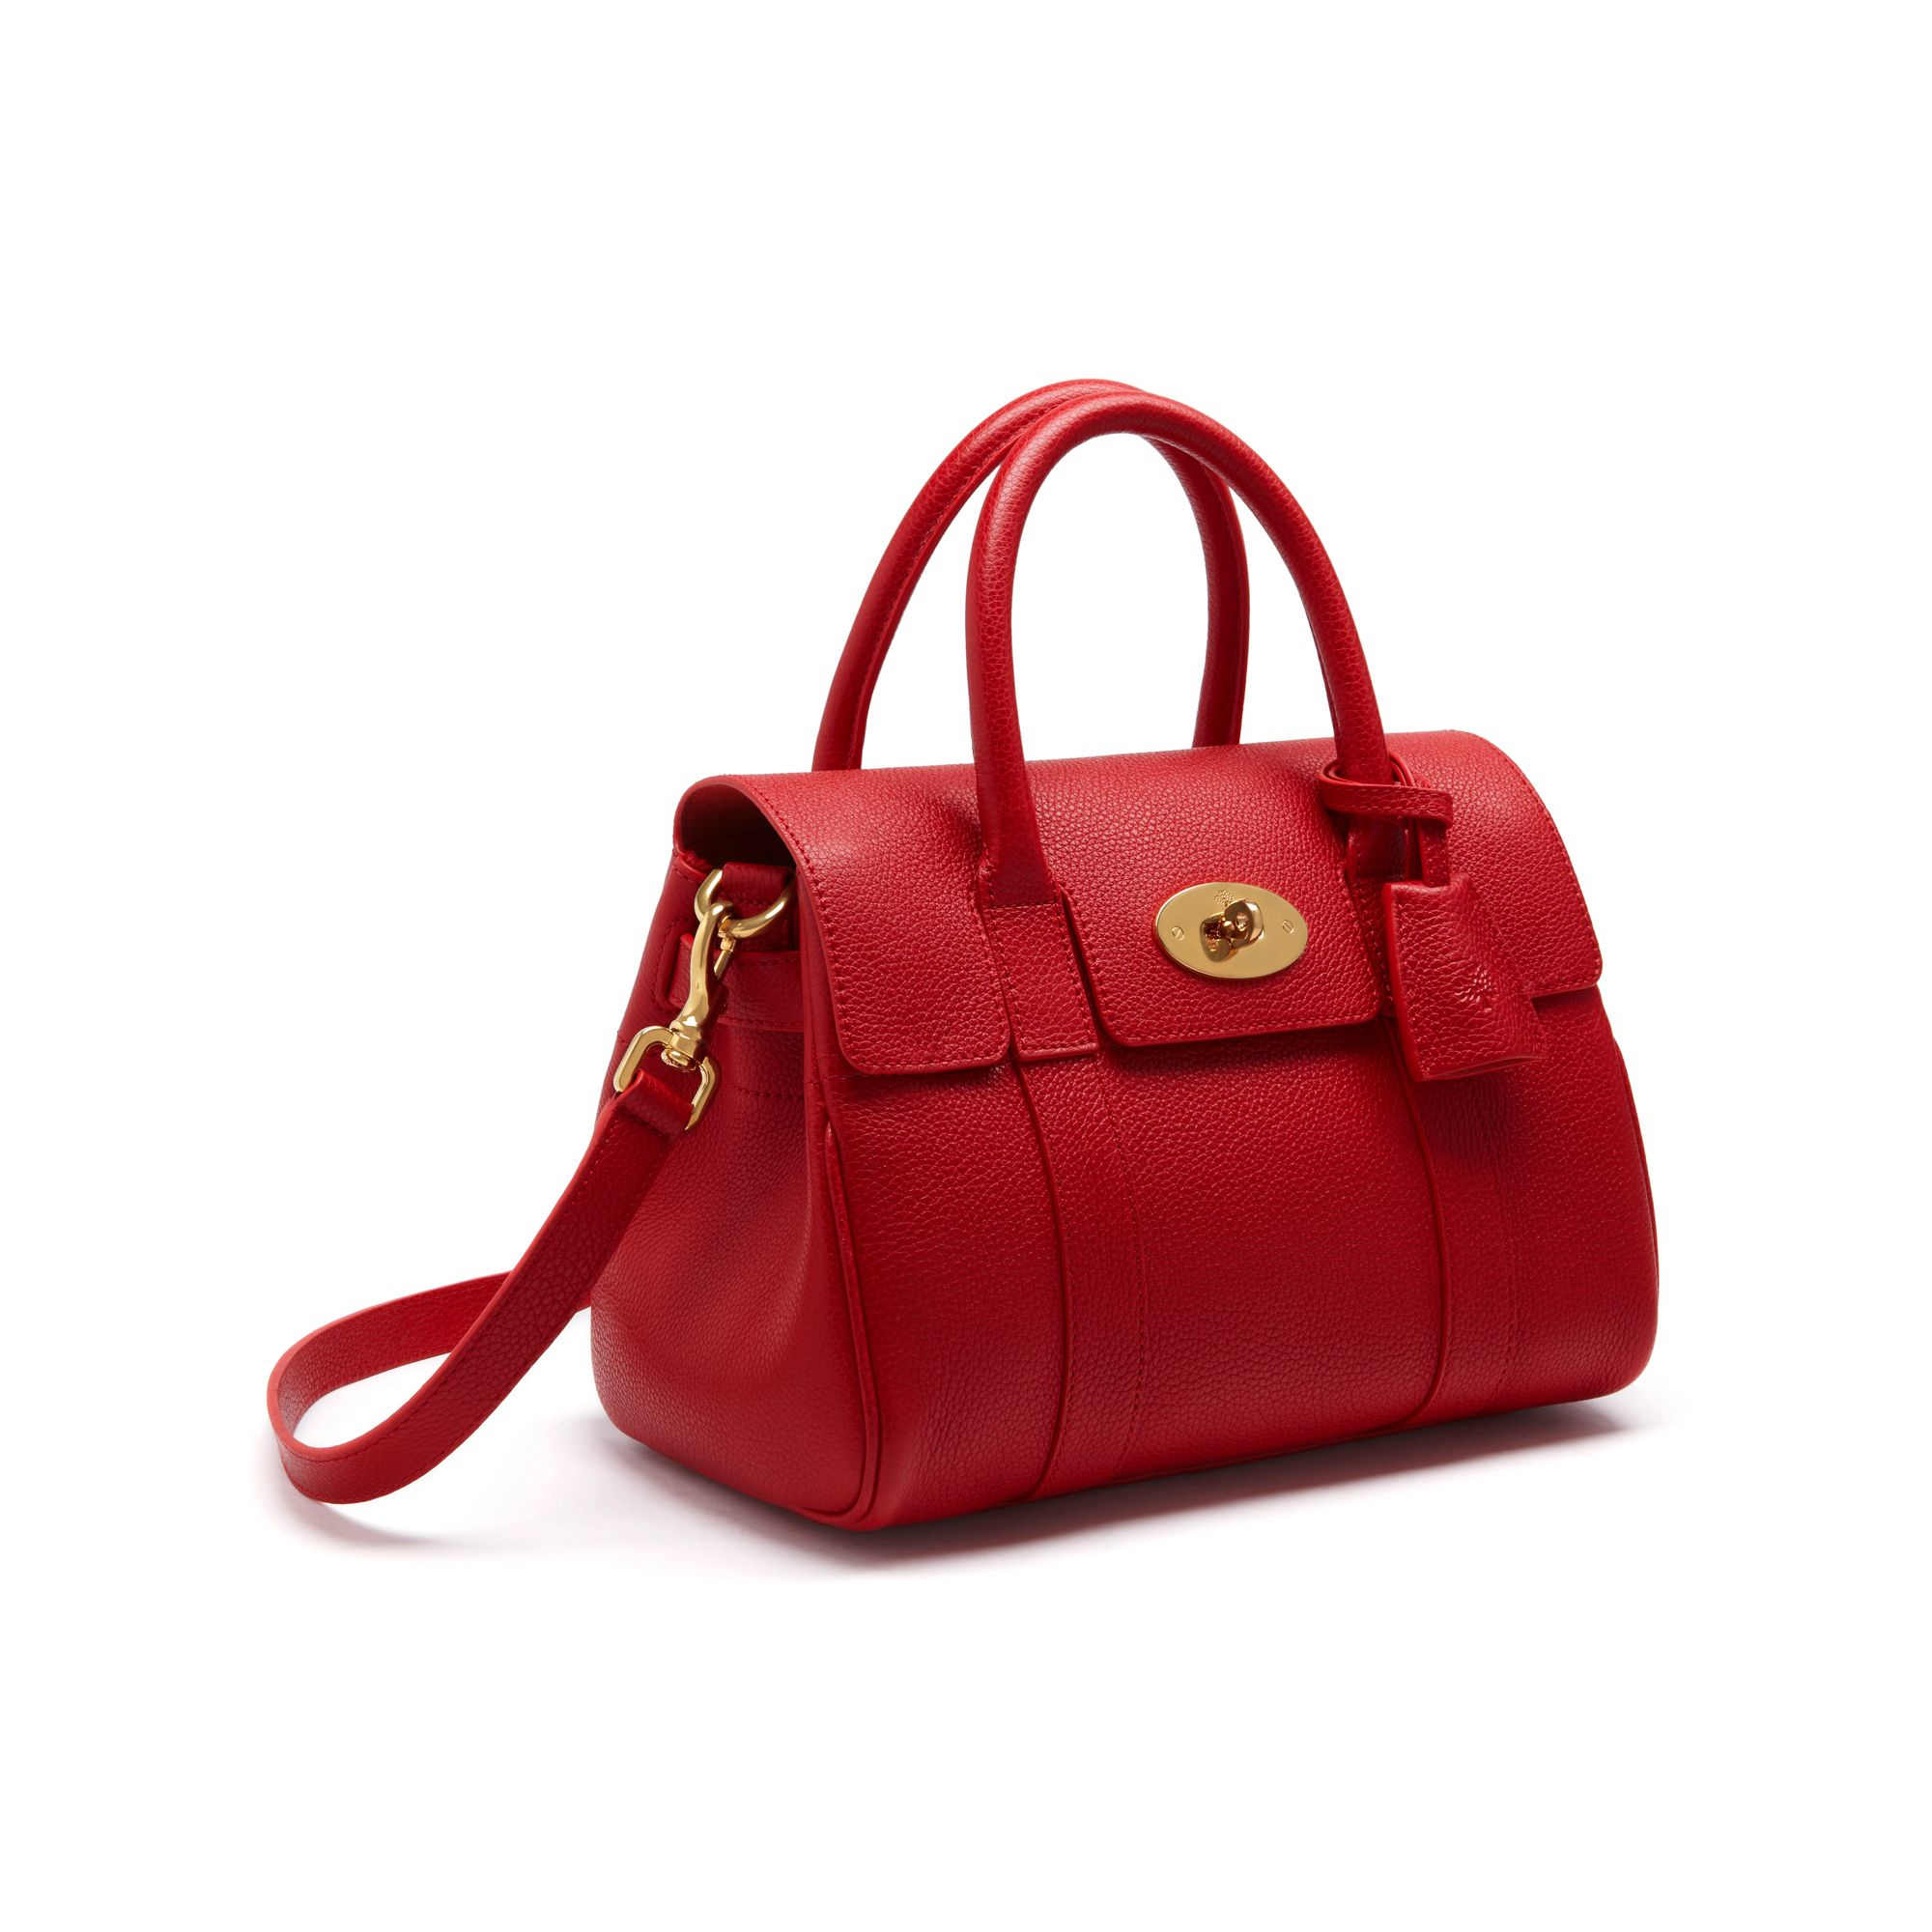 87c9fb8ee6b Lyst - Mulberry Small Bayswater Satchel in Red